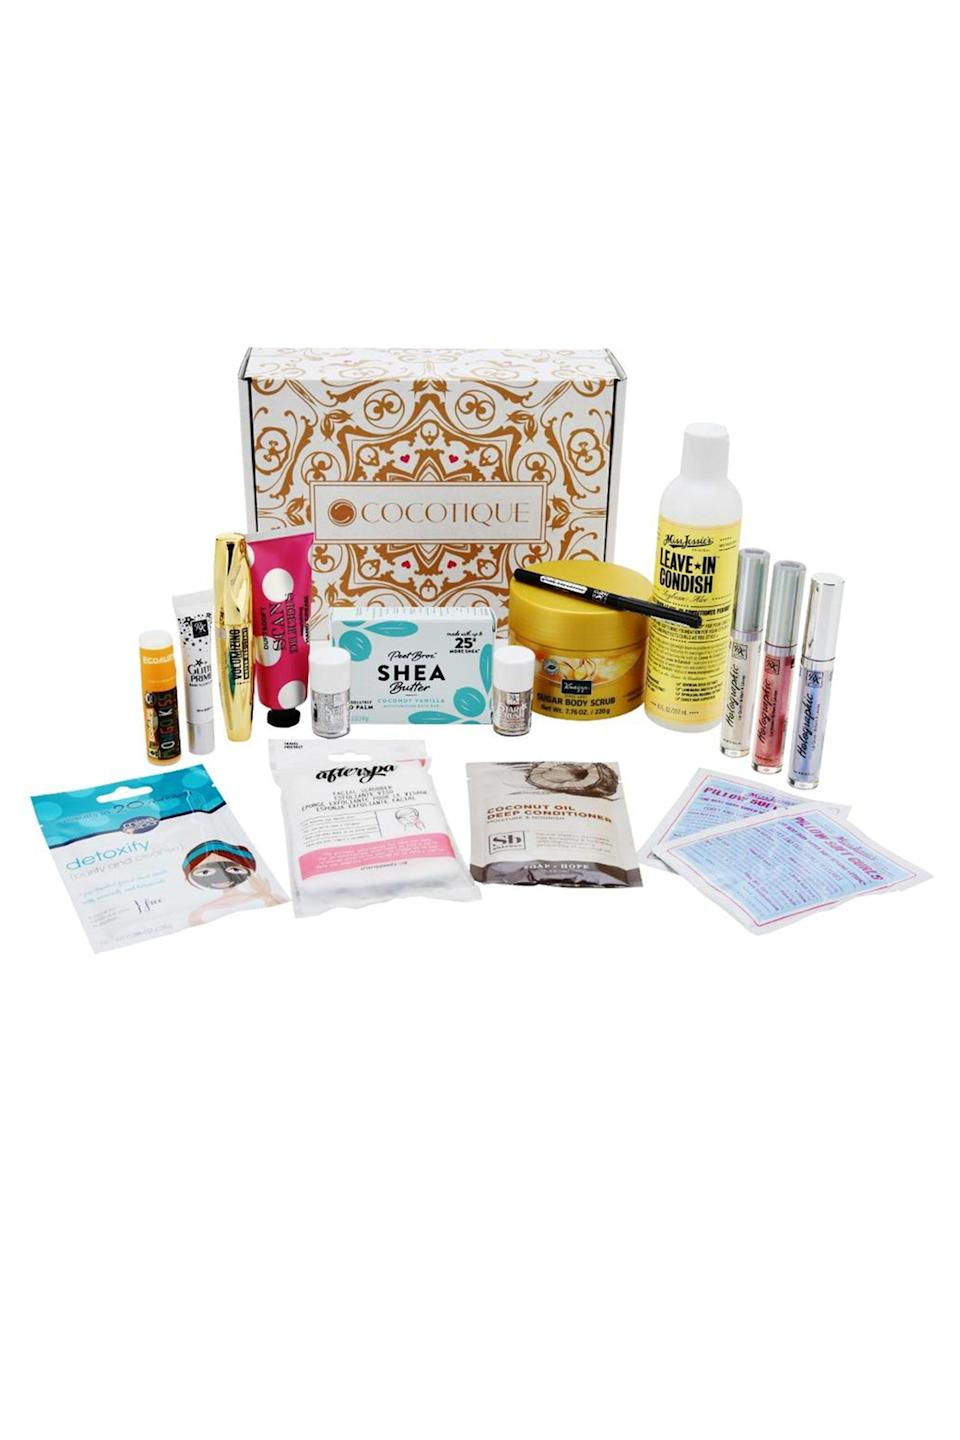 """<p><strong>Cocotique</strong></p><p>Cocotique</p><p><strong>$25.00</strong></p><p><a href=""""https://www.cocotique.com/products/the-box-monthly"""" rel=""""nofollow noopener"""" target=""""_blank"""" data-ylk=""""slk:Shop Now"""" class=""""link rapid-noclick-resp"""">Shop Now</a></p><p>Cocotique brings you the best in <a href=""""https://www.elle.com/beauty/makeup-skin-care/a34851519/thirteen-lune-nyakio-grieco-black-beauty/"""" rel=""""nofollow noopener"""" target=""""_blank"""" data-ylk=""""slk:Black beauty"""" class=""""link rapid-noclick-resp"""">Black beauty</a> and wellness products for just $25 a month. With boxes ranging from five to six products in both full and travel sizes, this subscription box is so worth it.</p>"""